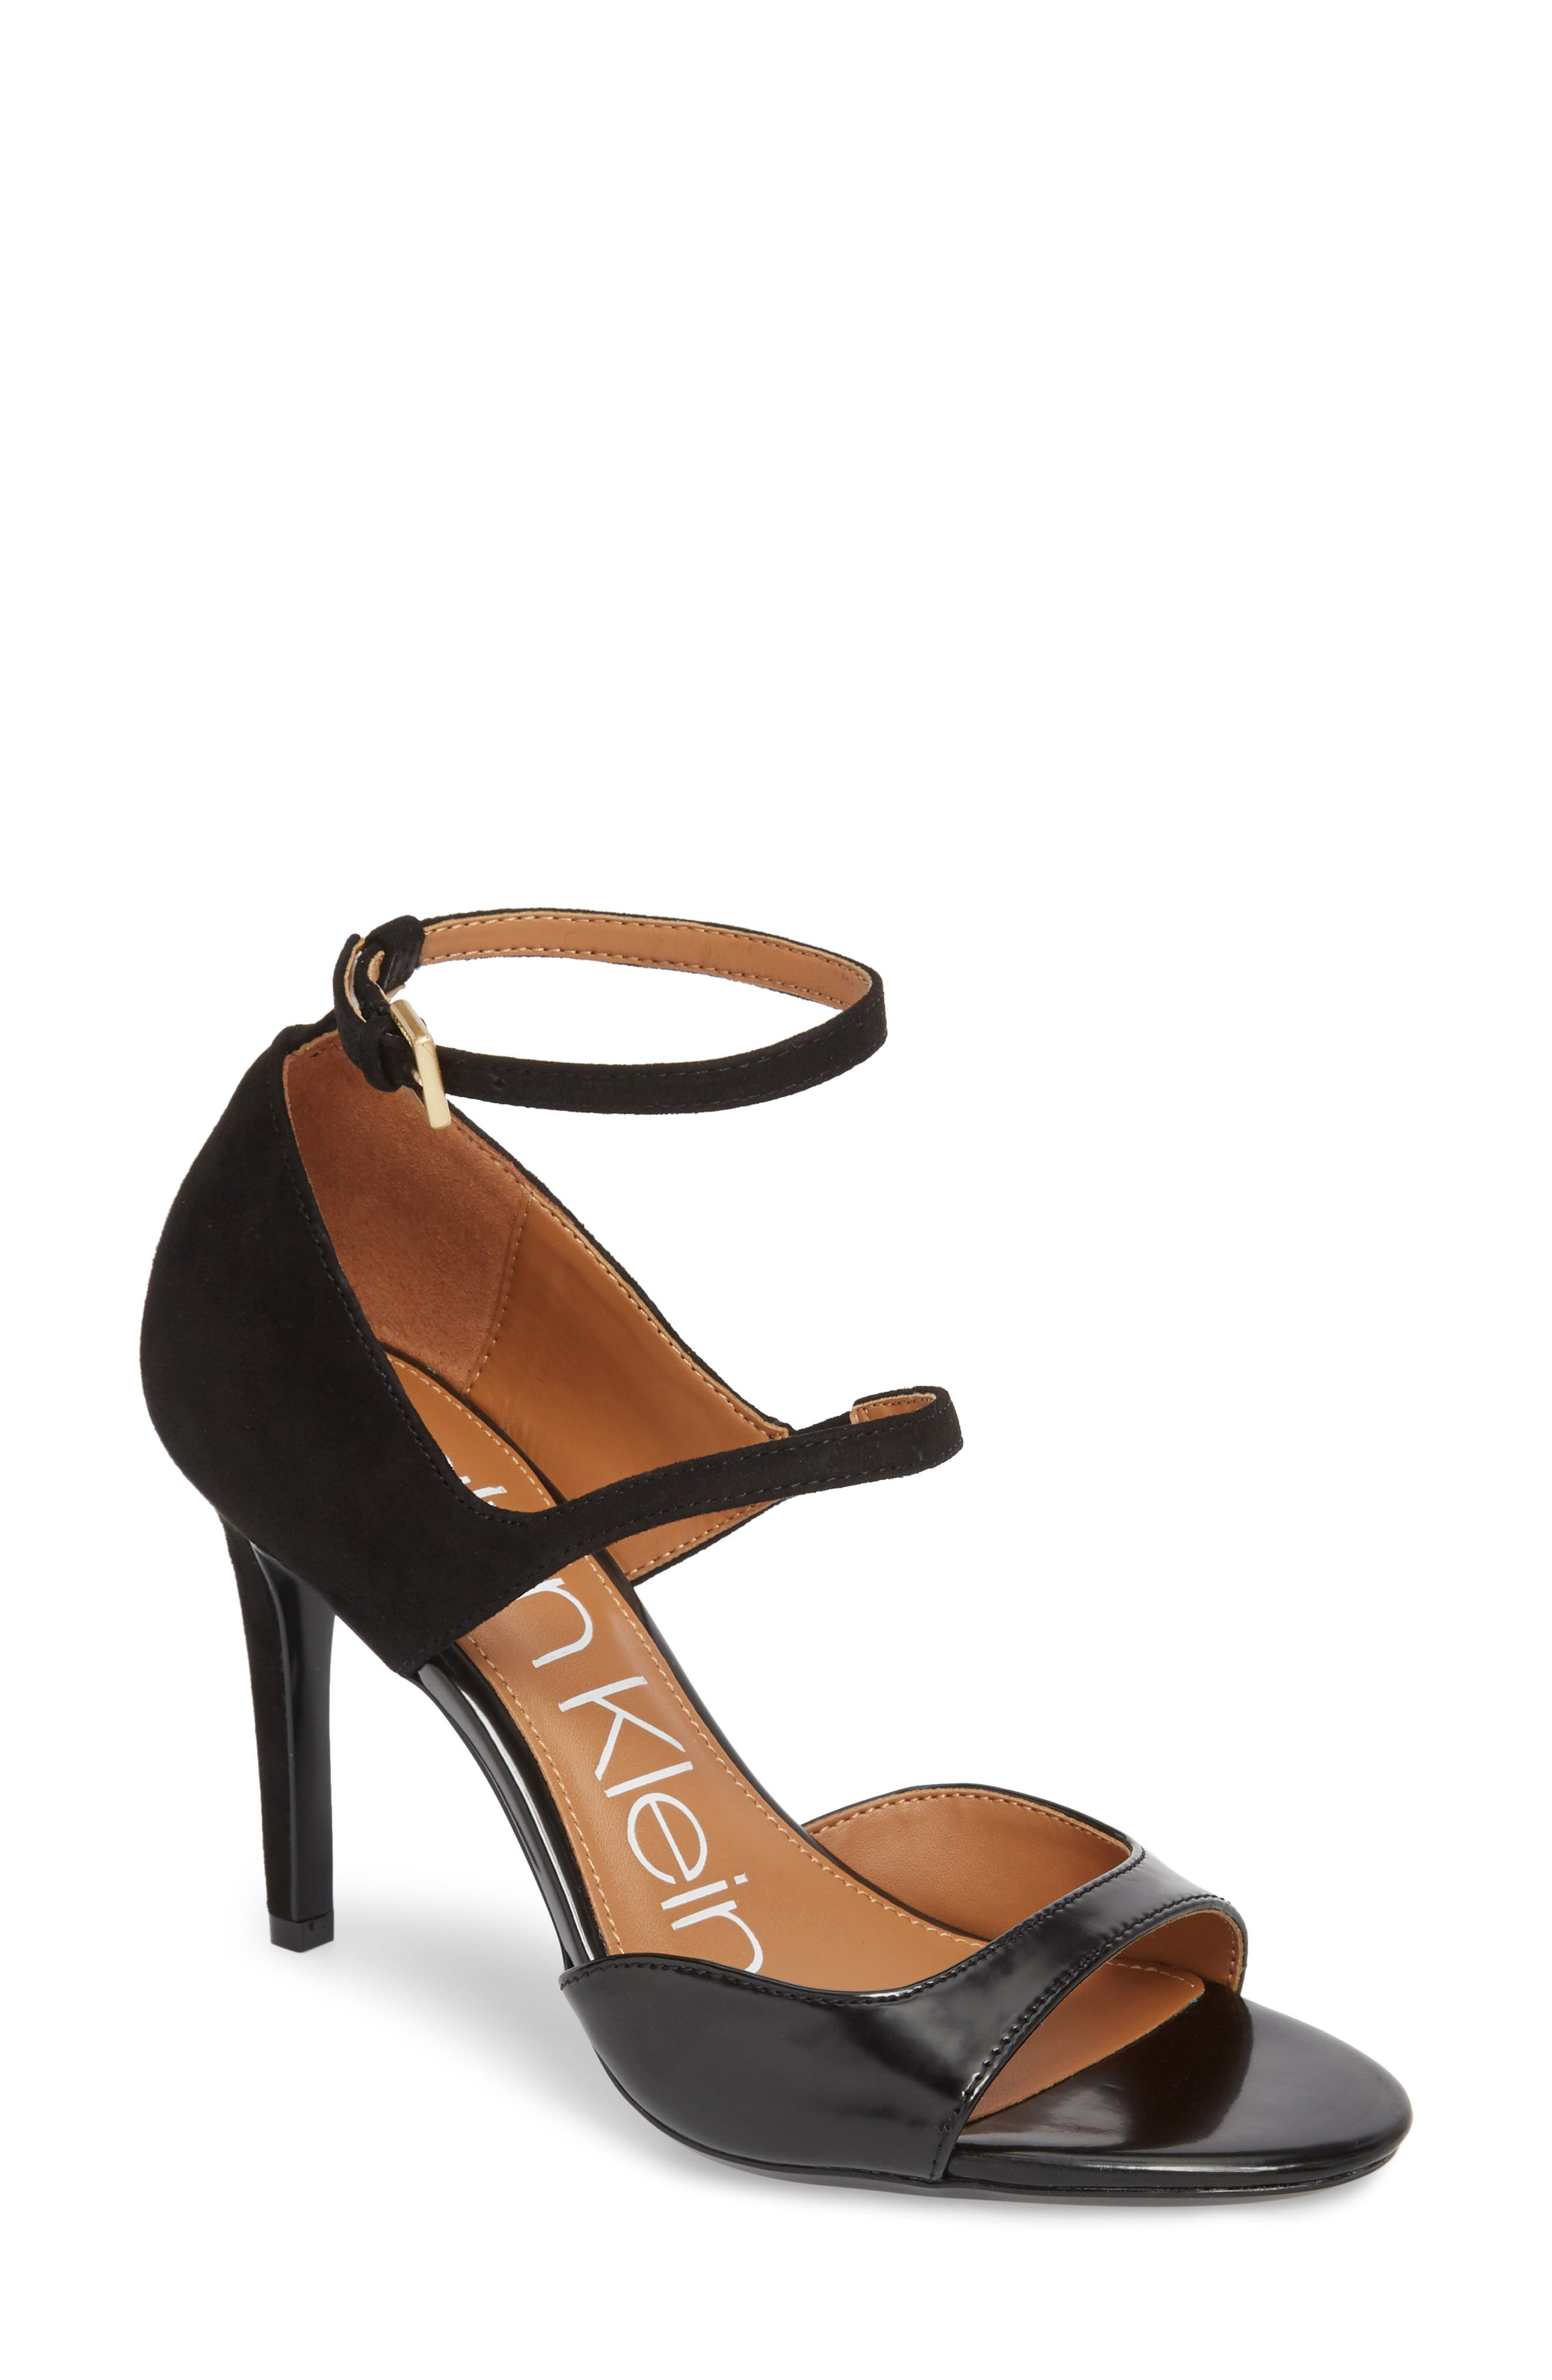 Nadeen Strappy Sandal,                             Main thumbnail 1, color,                             BLACK LEATHER